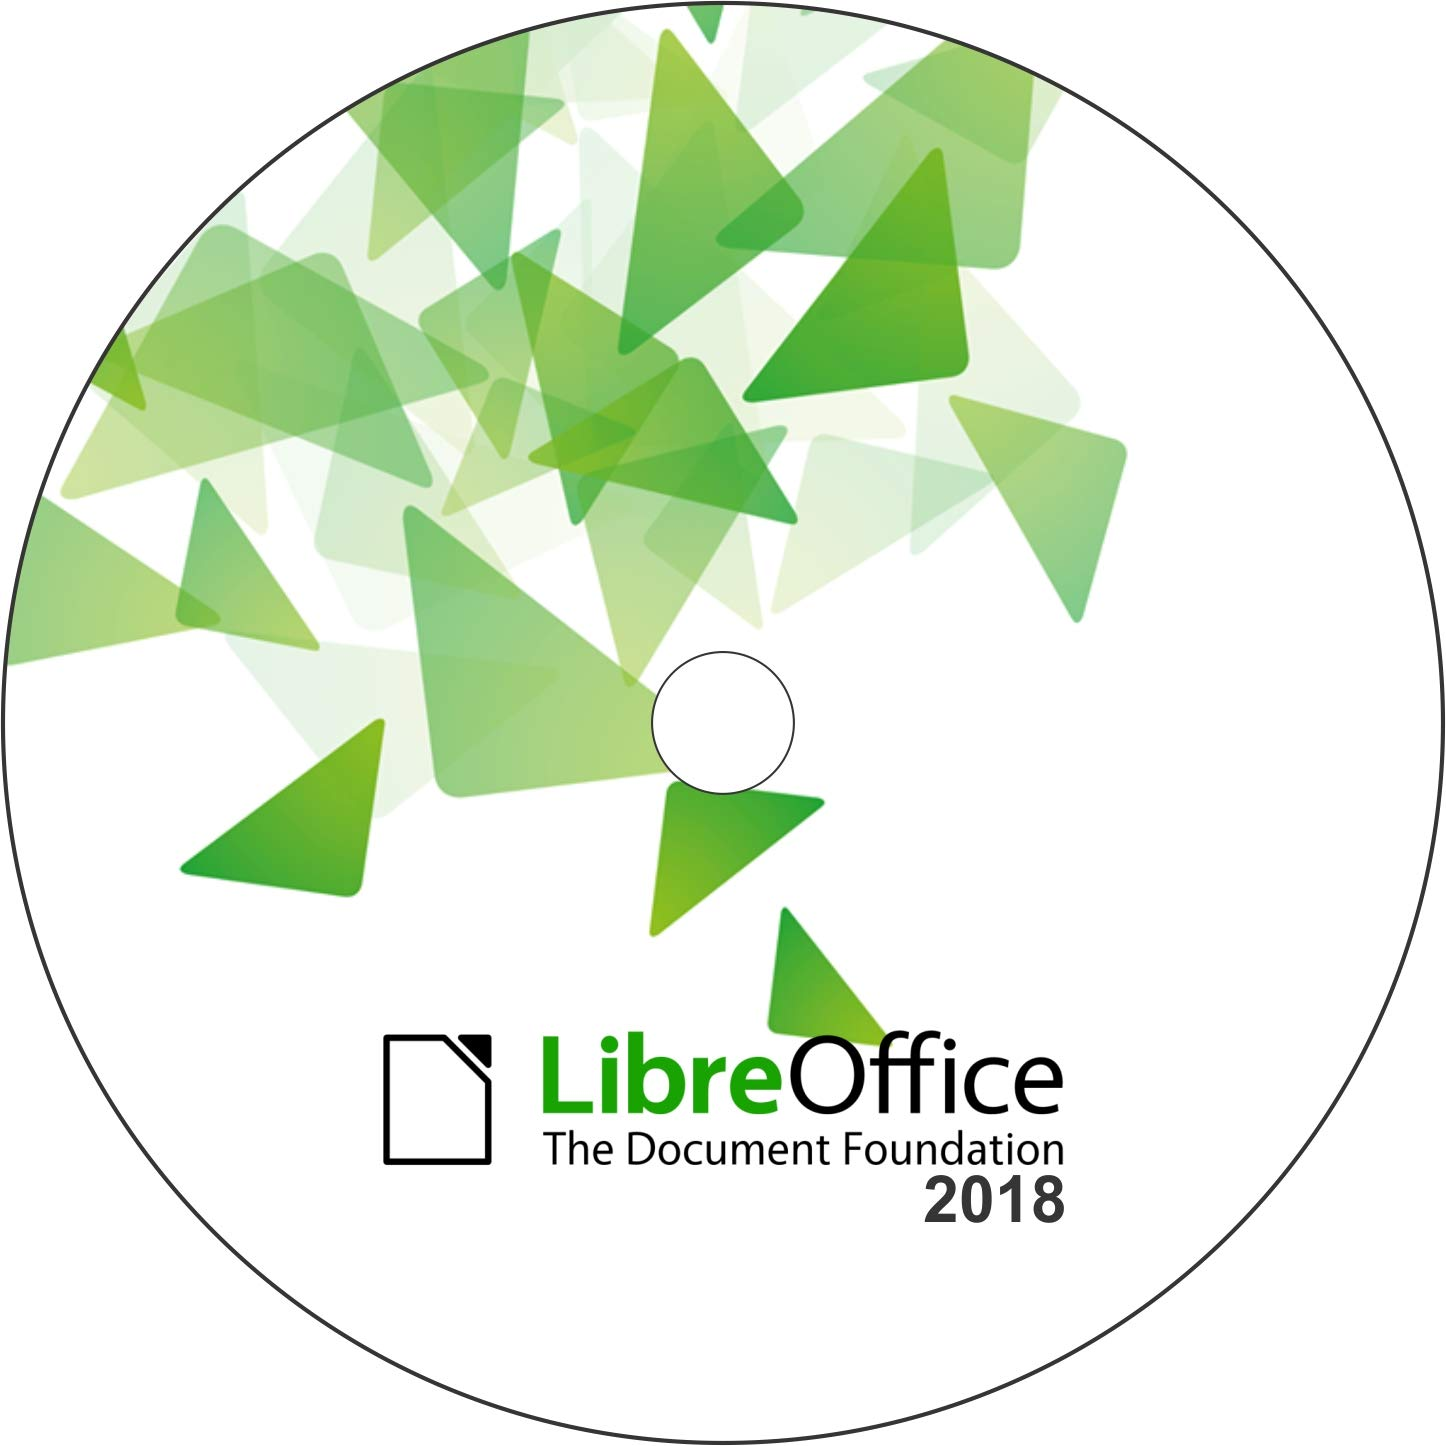 TechGuy4u LibreOffice 2018 Home, Student, Professional & Business - Word &  Excel Compatible Software for PC Microsoft Windows 10 8 1 8 7 Vista XP 32